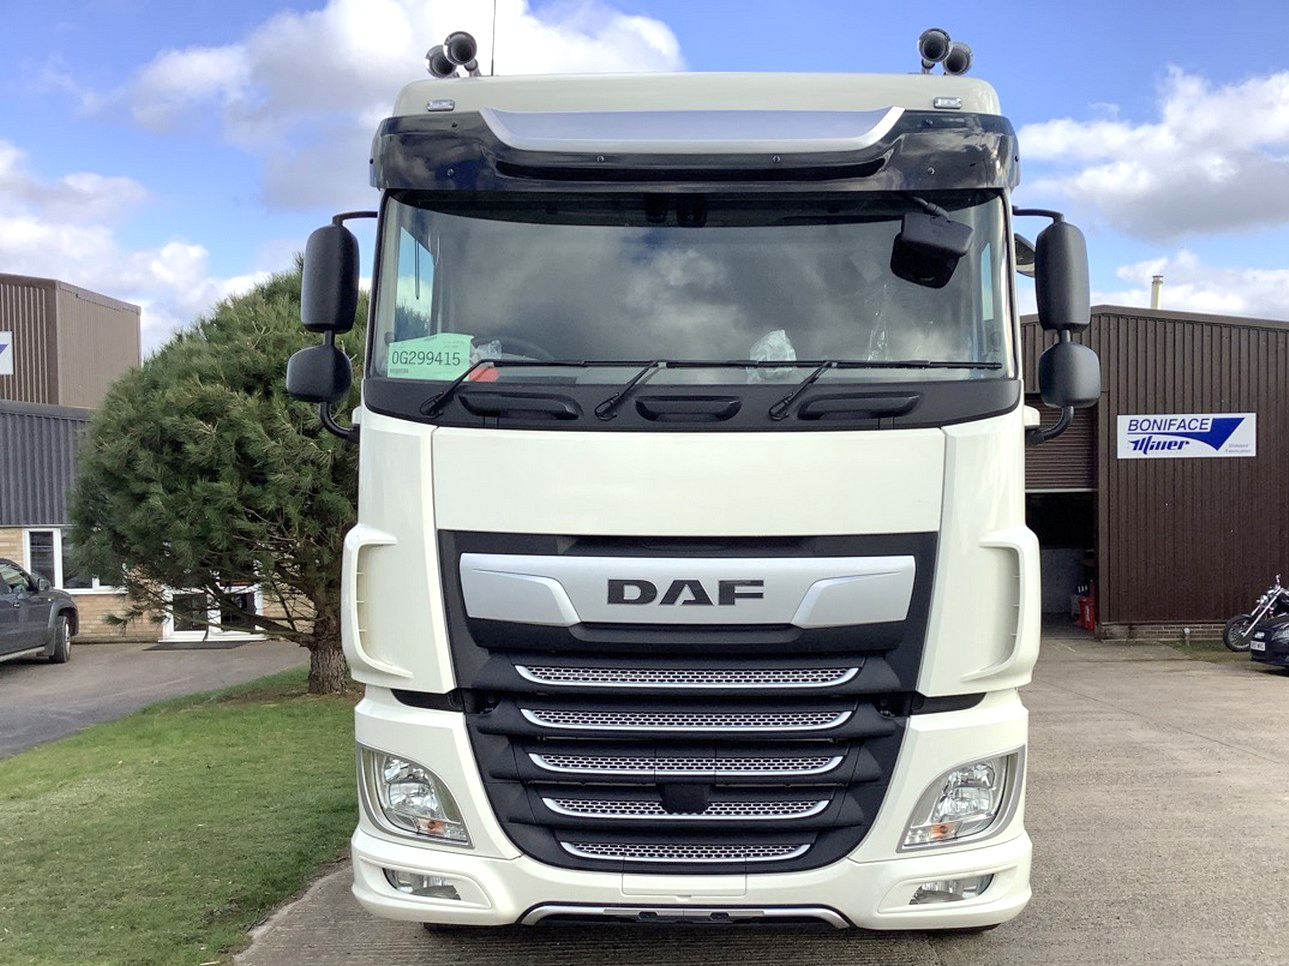 New stock DAF 6x2 XF530 front